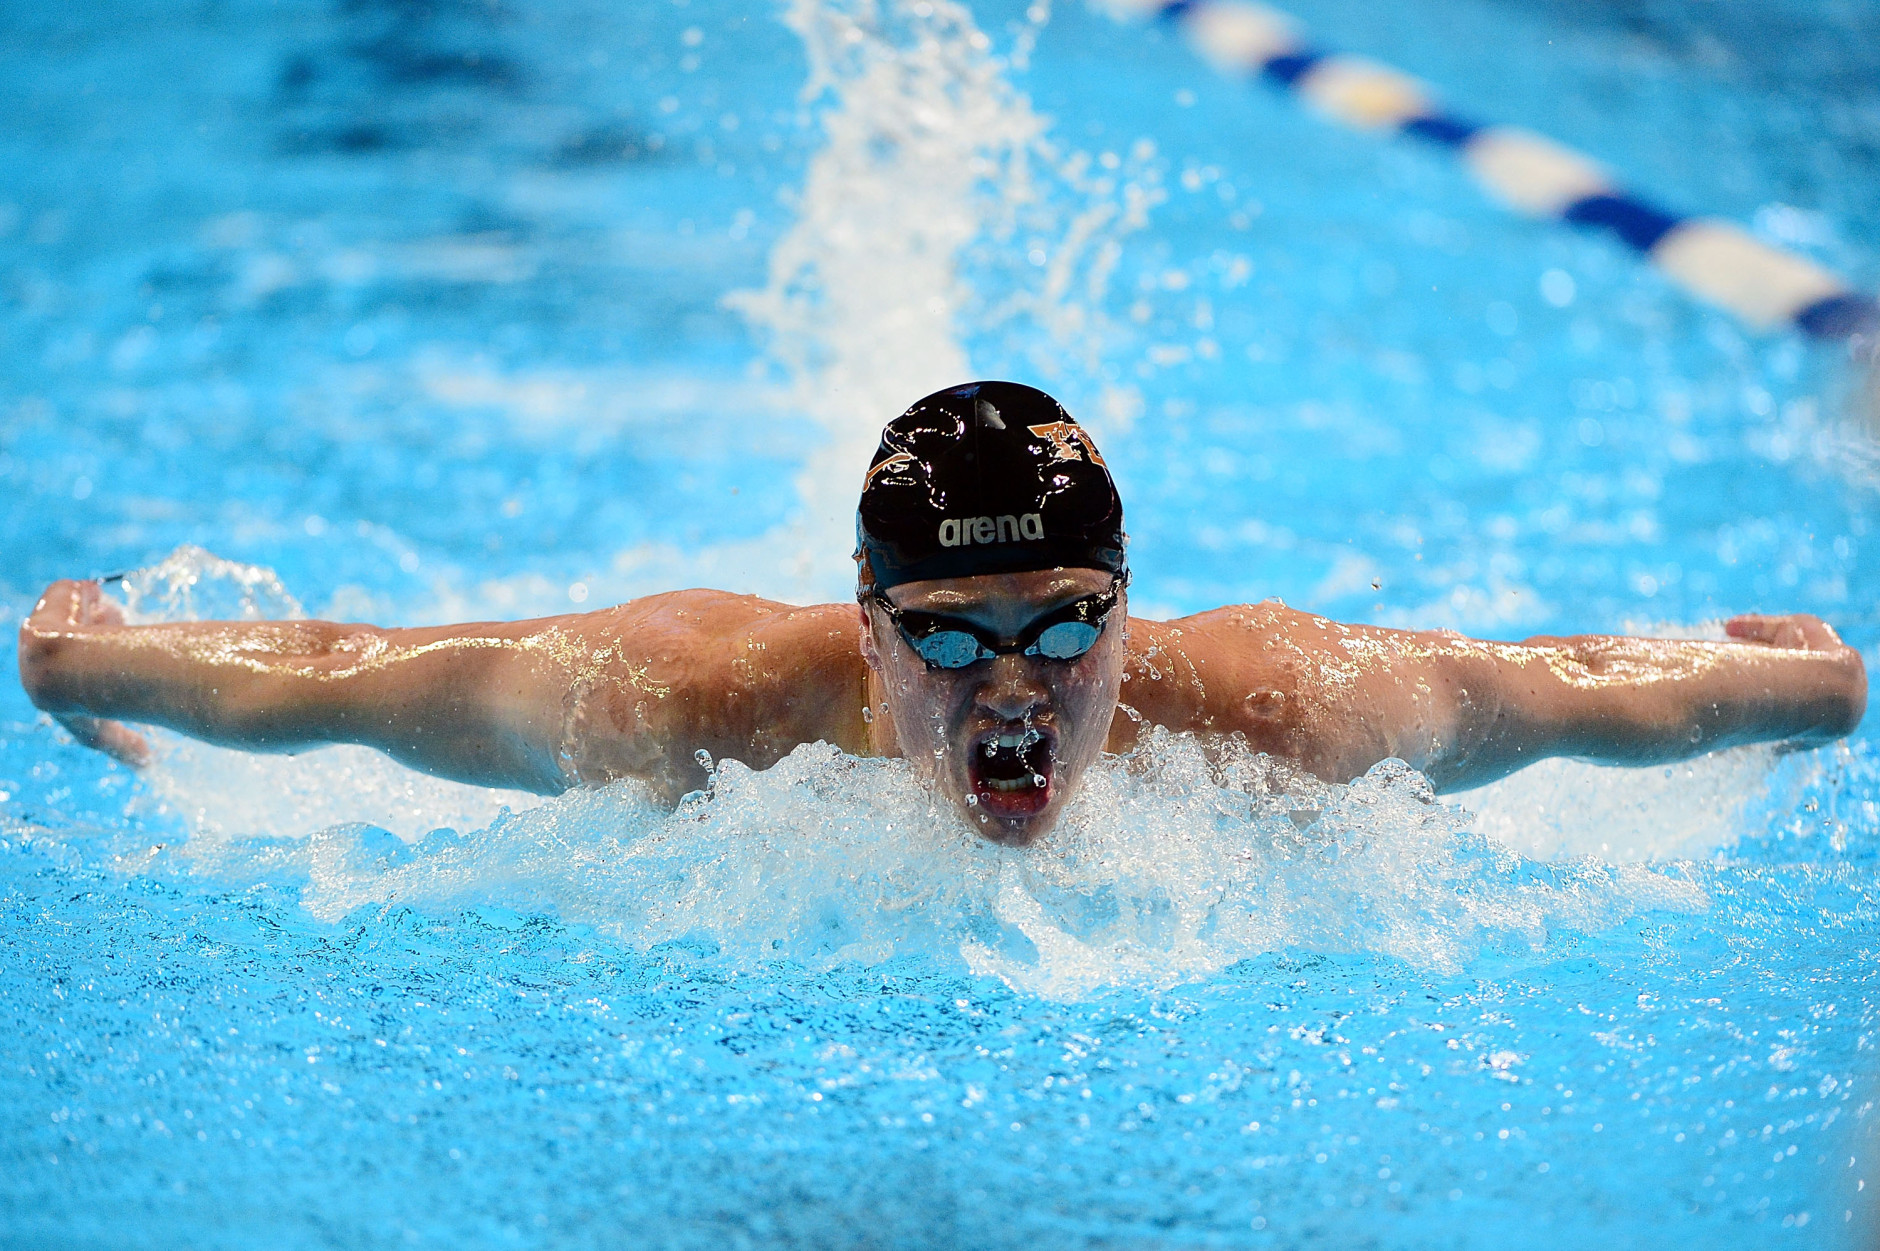 OMAHA, NE - JUNE 28:  Jack Conger competes in a semi-final heat of the Men's 200 Meter Butterfly during Day 3 of the 2016 U.S. Olympic Team Swimming Trials at CenturyLink Center on June 28, 2016 in Omaha, Nebraska.  (Photo by Jeff Curry/Getty Images)